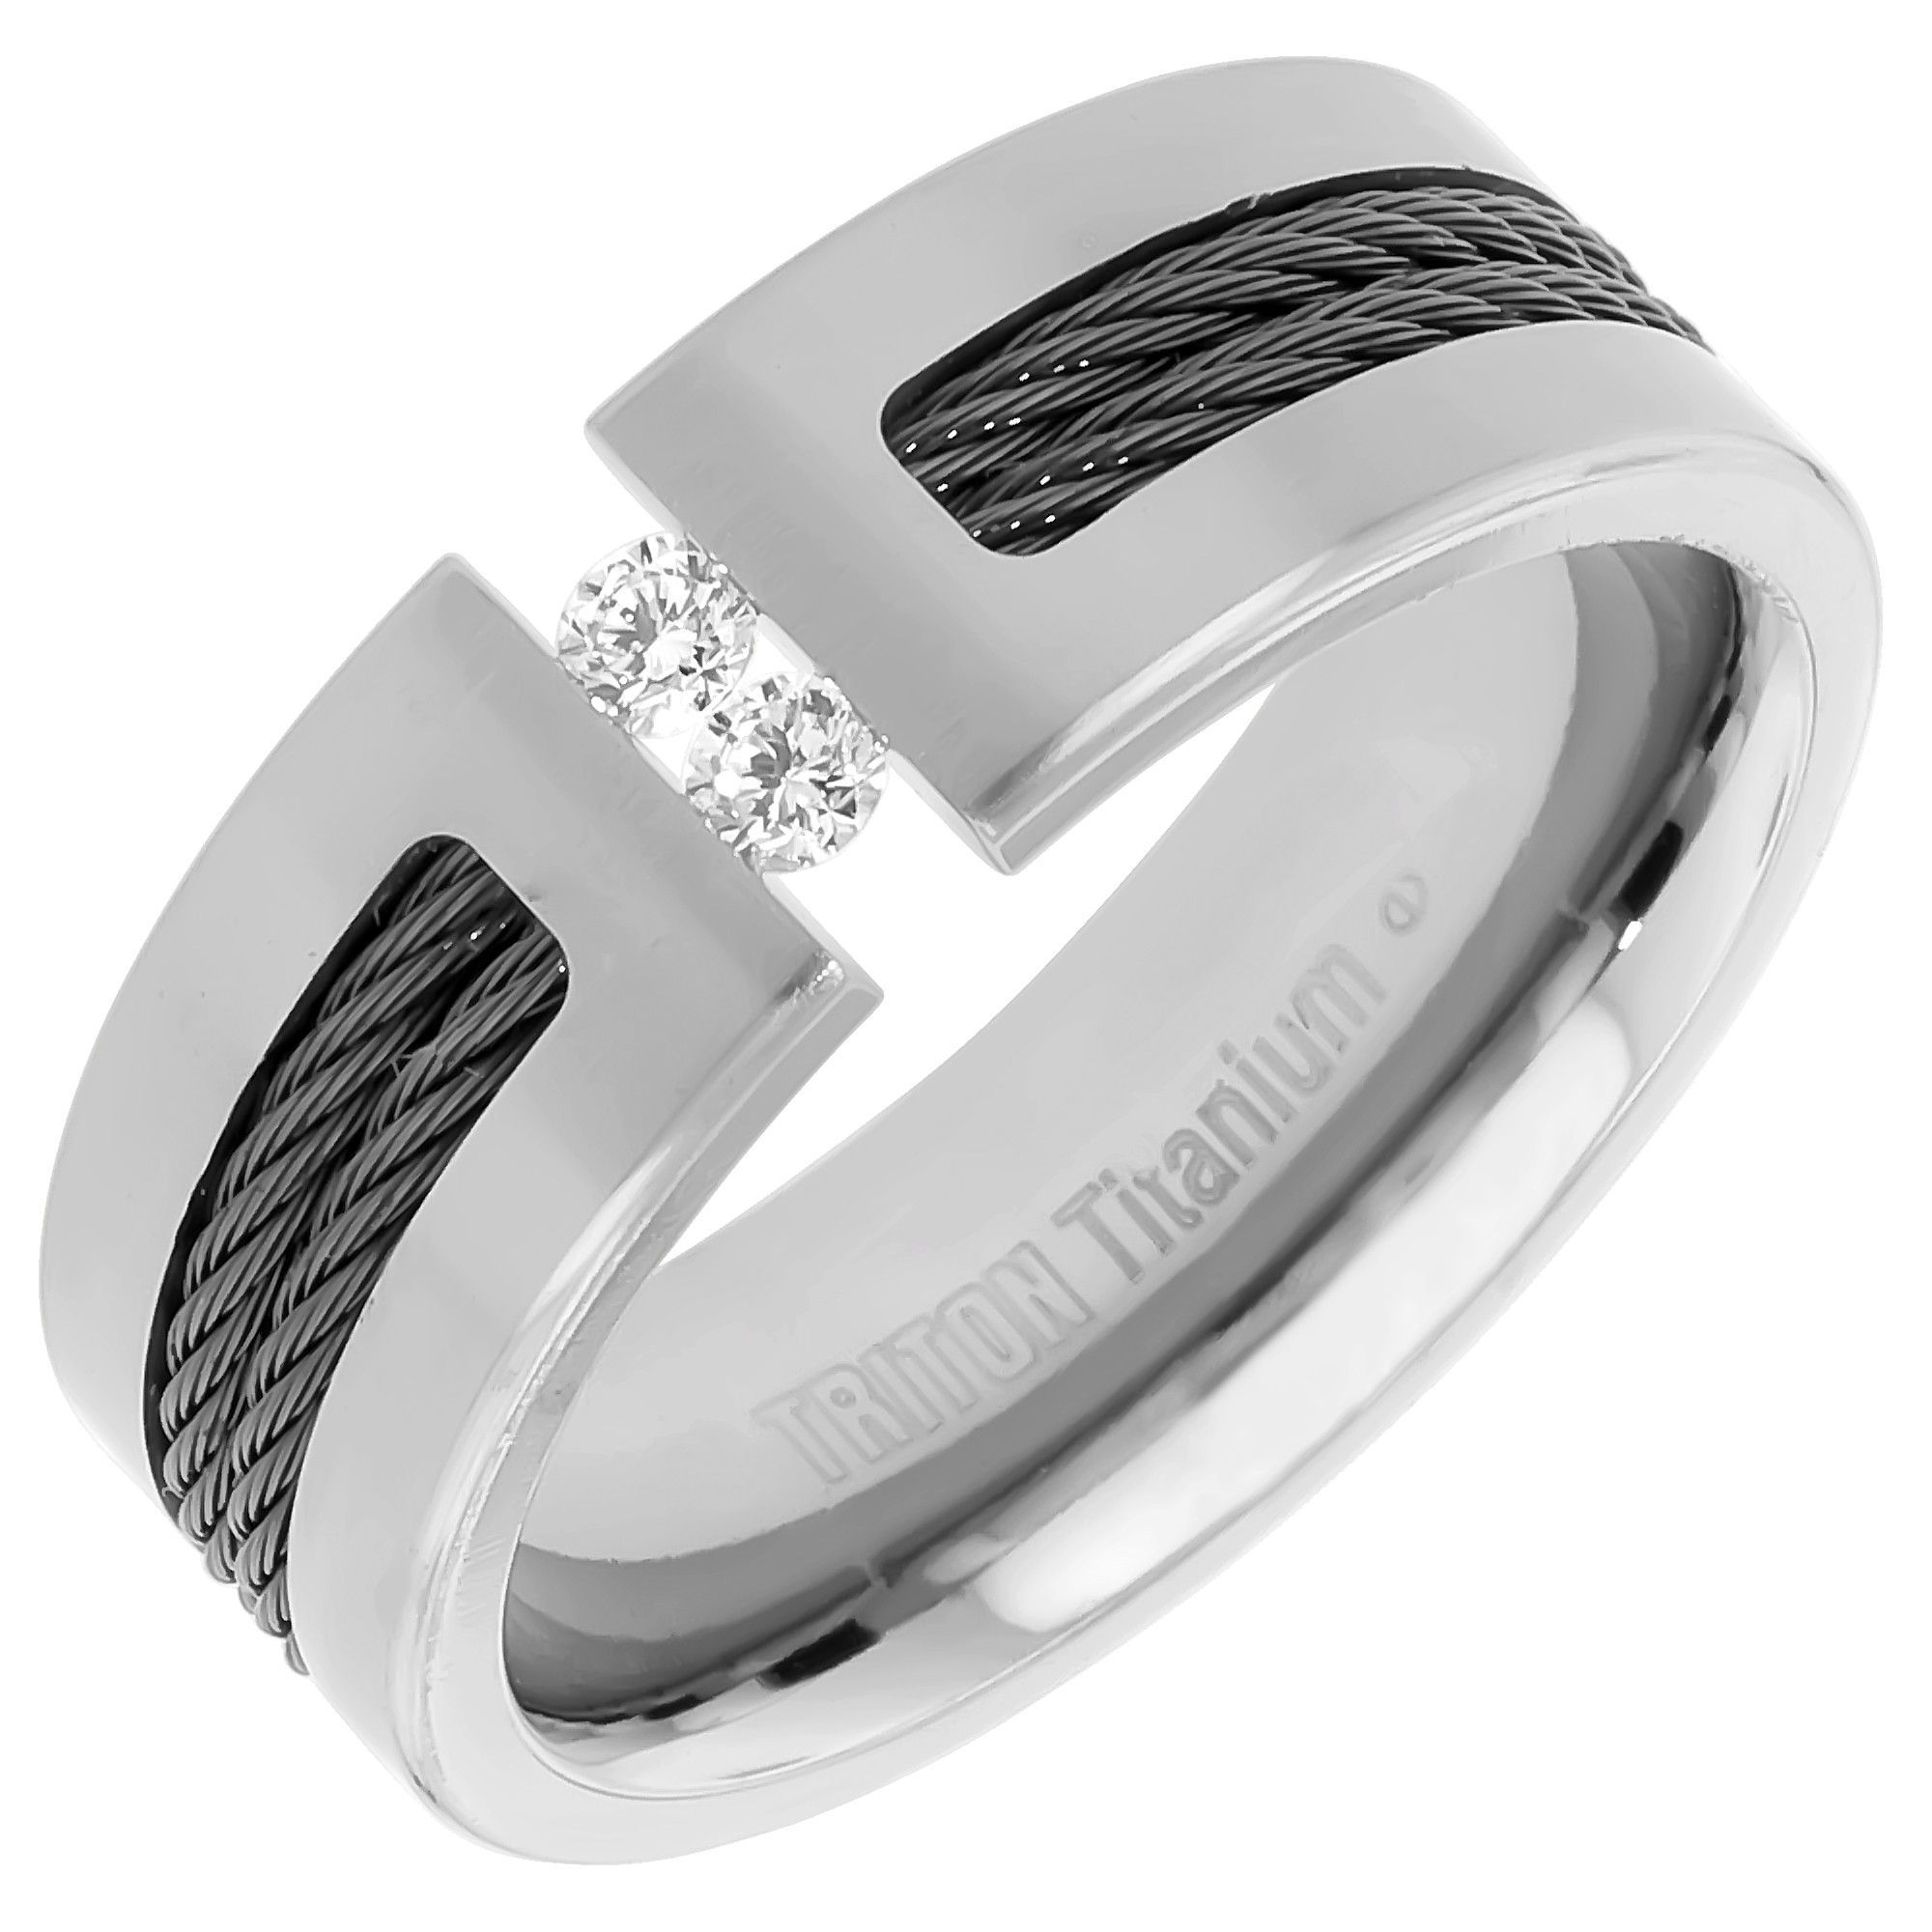 New Cheap Matching Wedding Bands for Him and Her